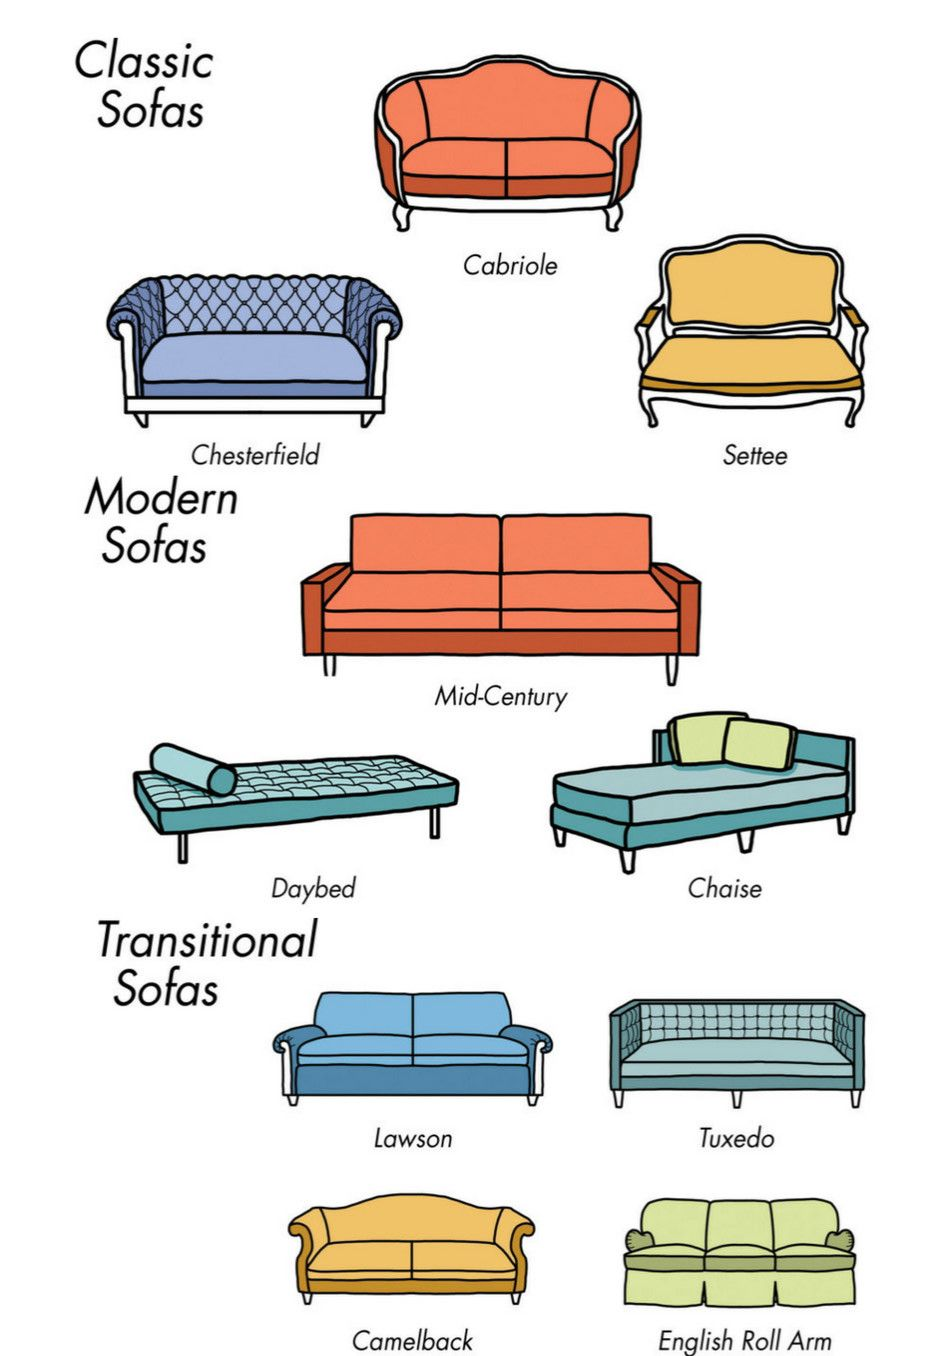 How To Choose A Sofa Choosing Is Decision Not Only Because Of The Cost But Also They Set Tone For Style Room